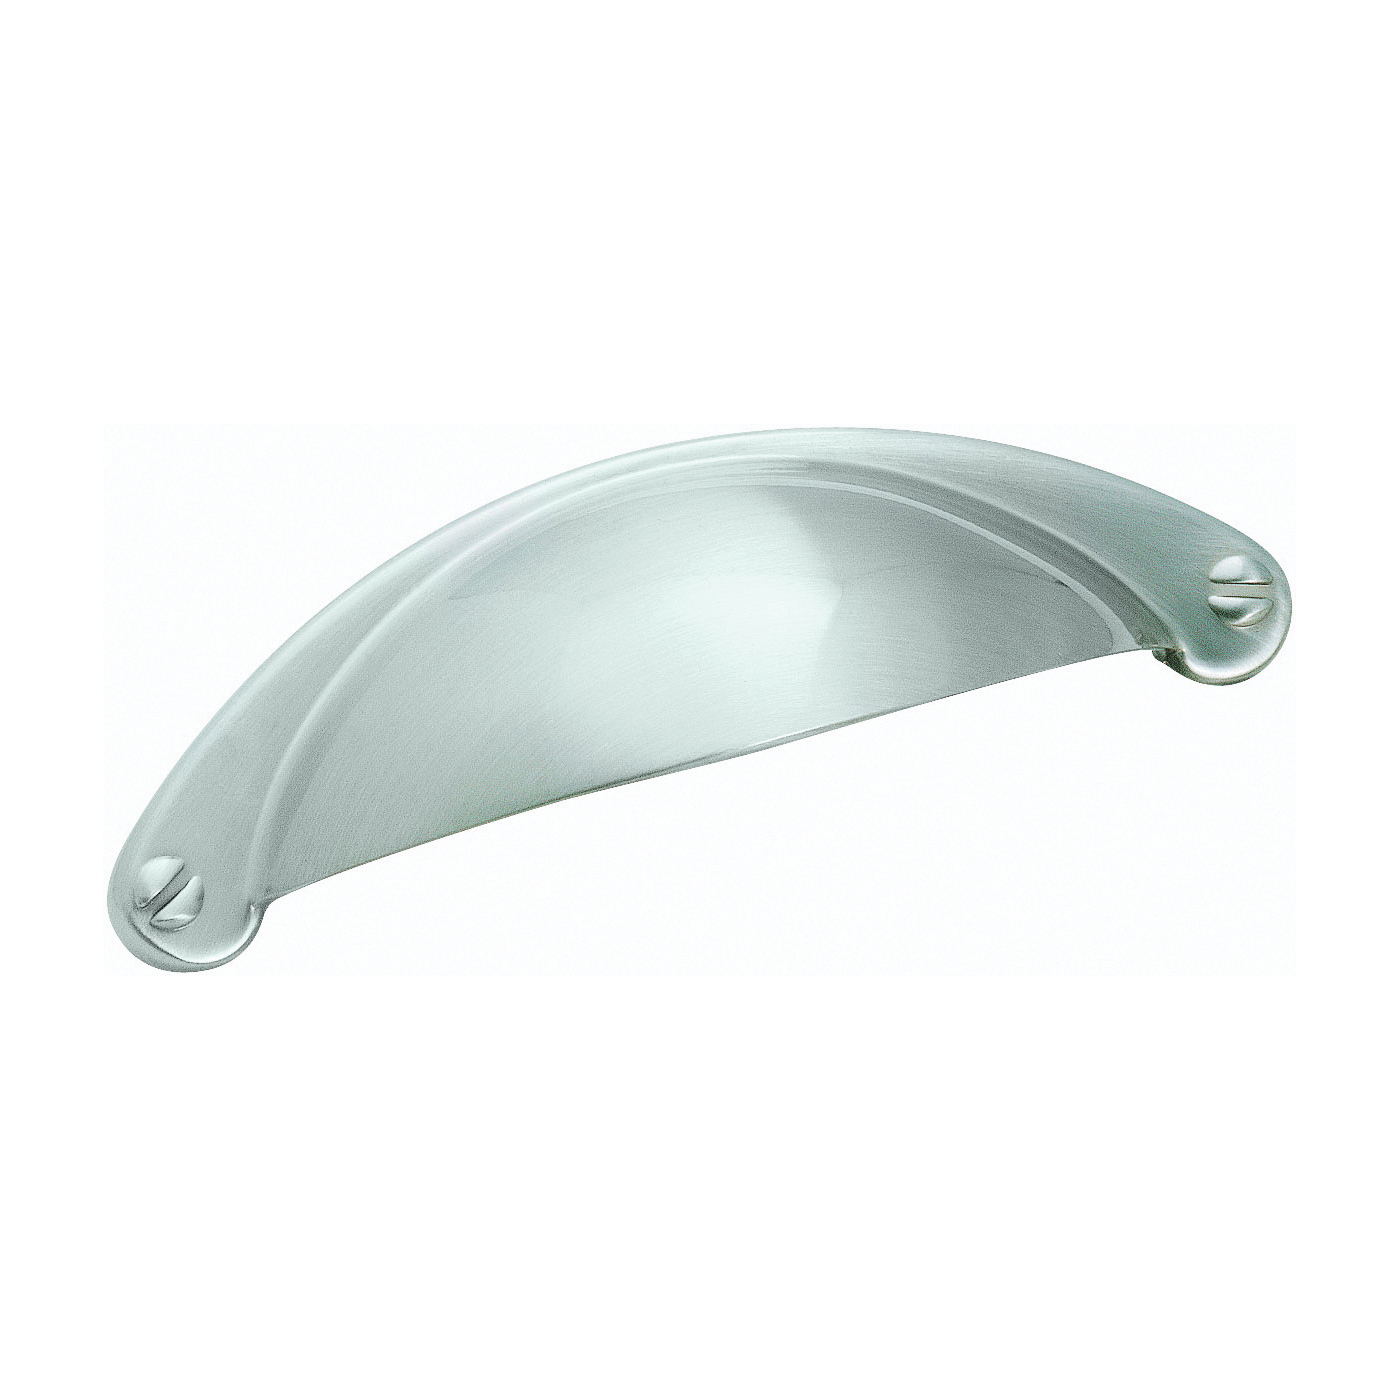 Picture of Amerock BP9365G10 Cabinet Pull, 4-1/16 in L Handle, 1 in H Handle, 1 in Projection, Zinc, Satin Nickel